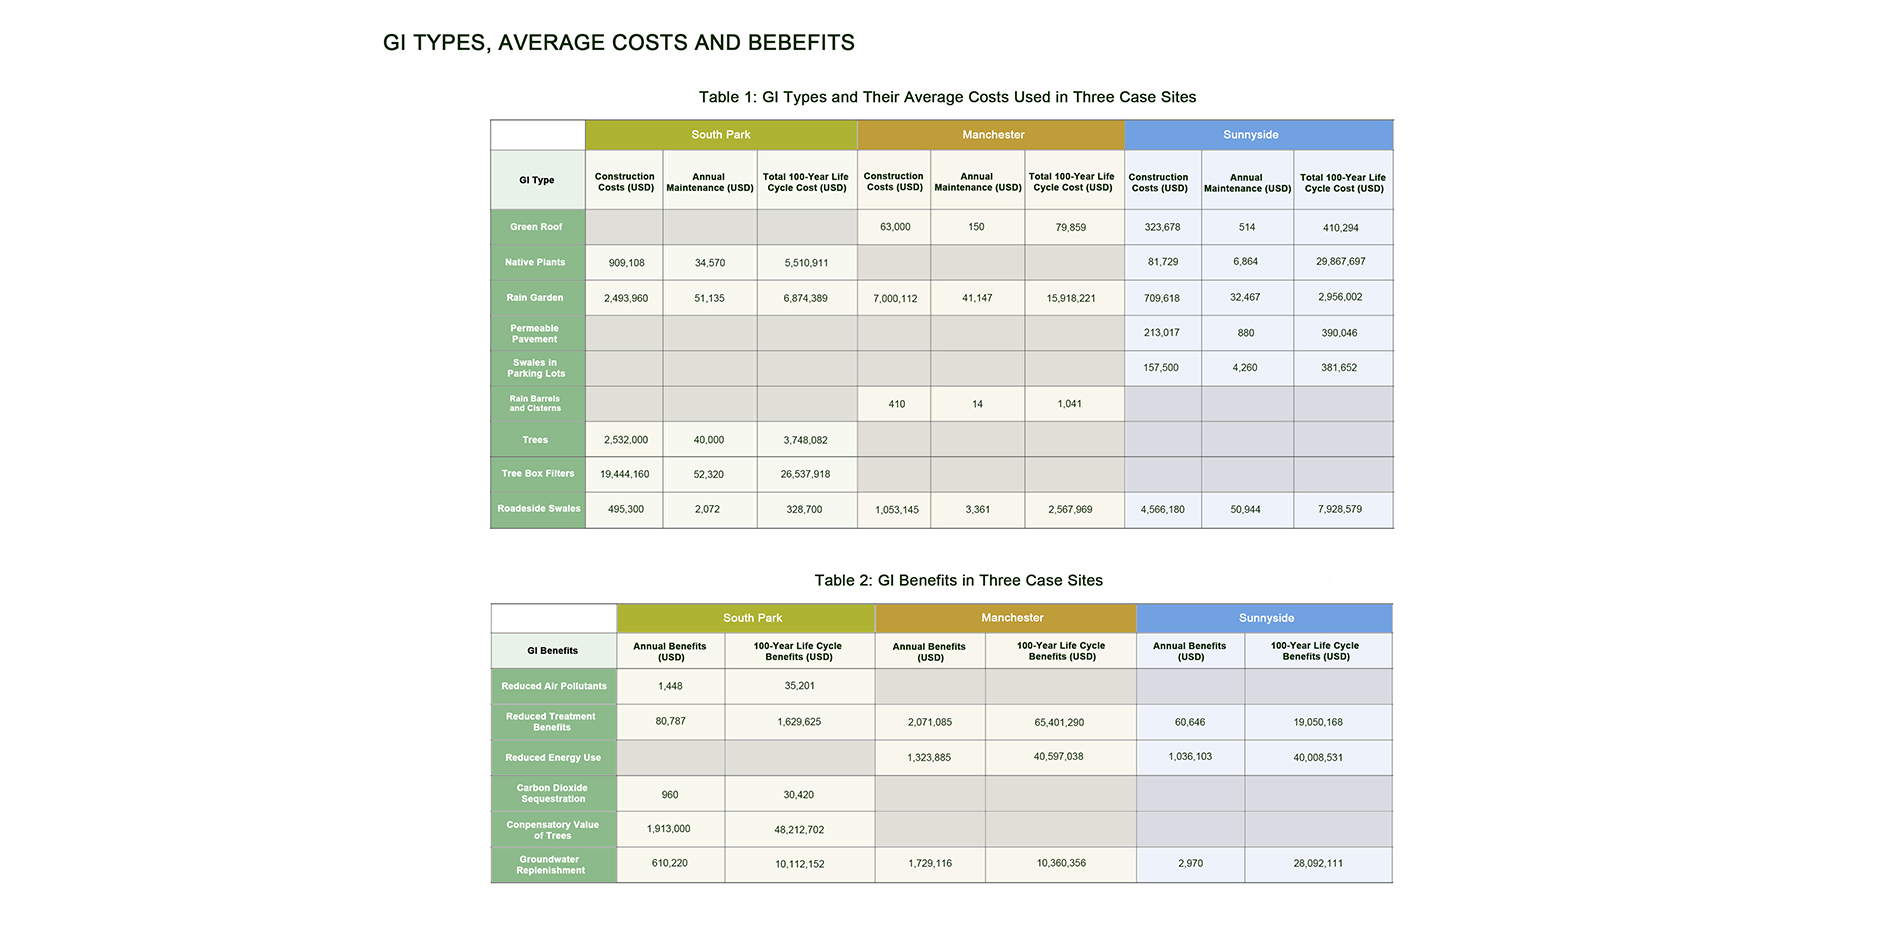 GI types, average costs and benefits